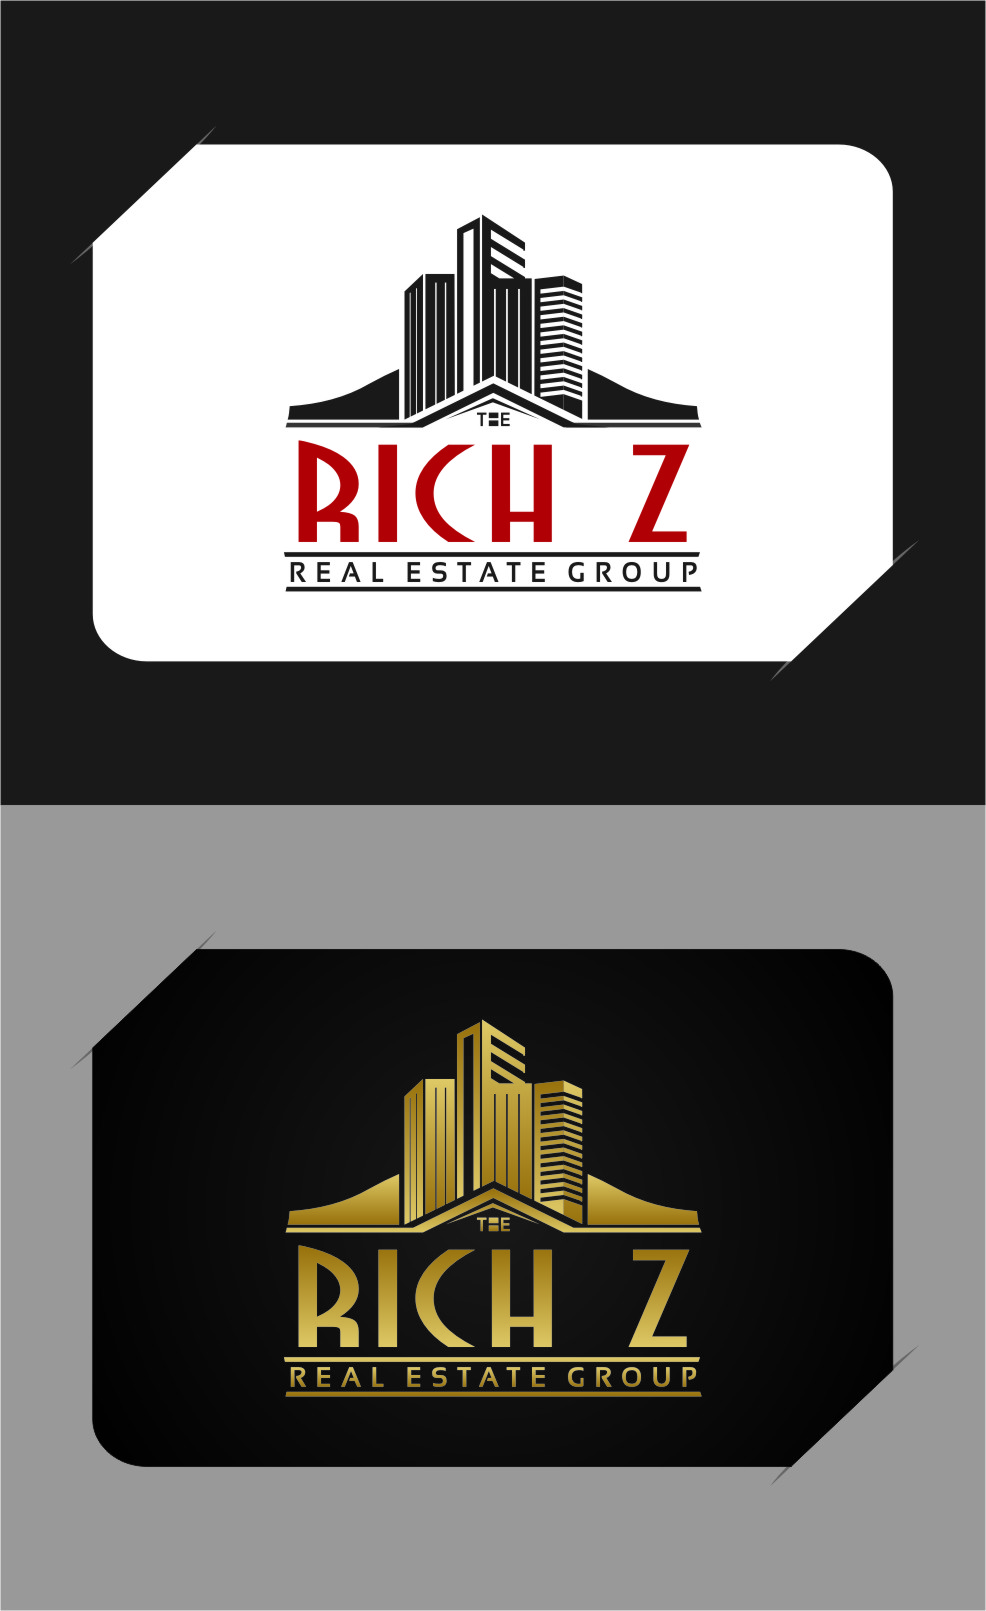 Logo Design by RasYa Muhammad Athaya - Entry No. 343 in the Logo Design Contest The Rich Z. Real Estate Group Logo Design.